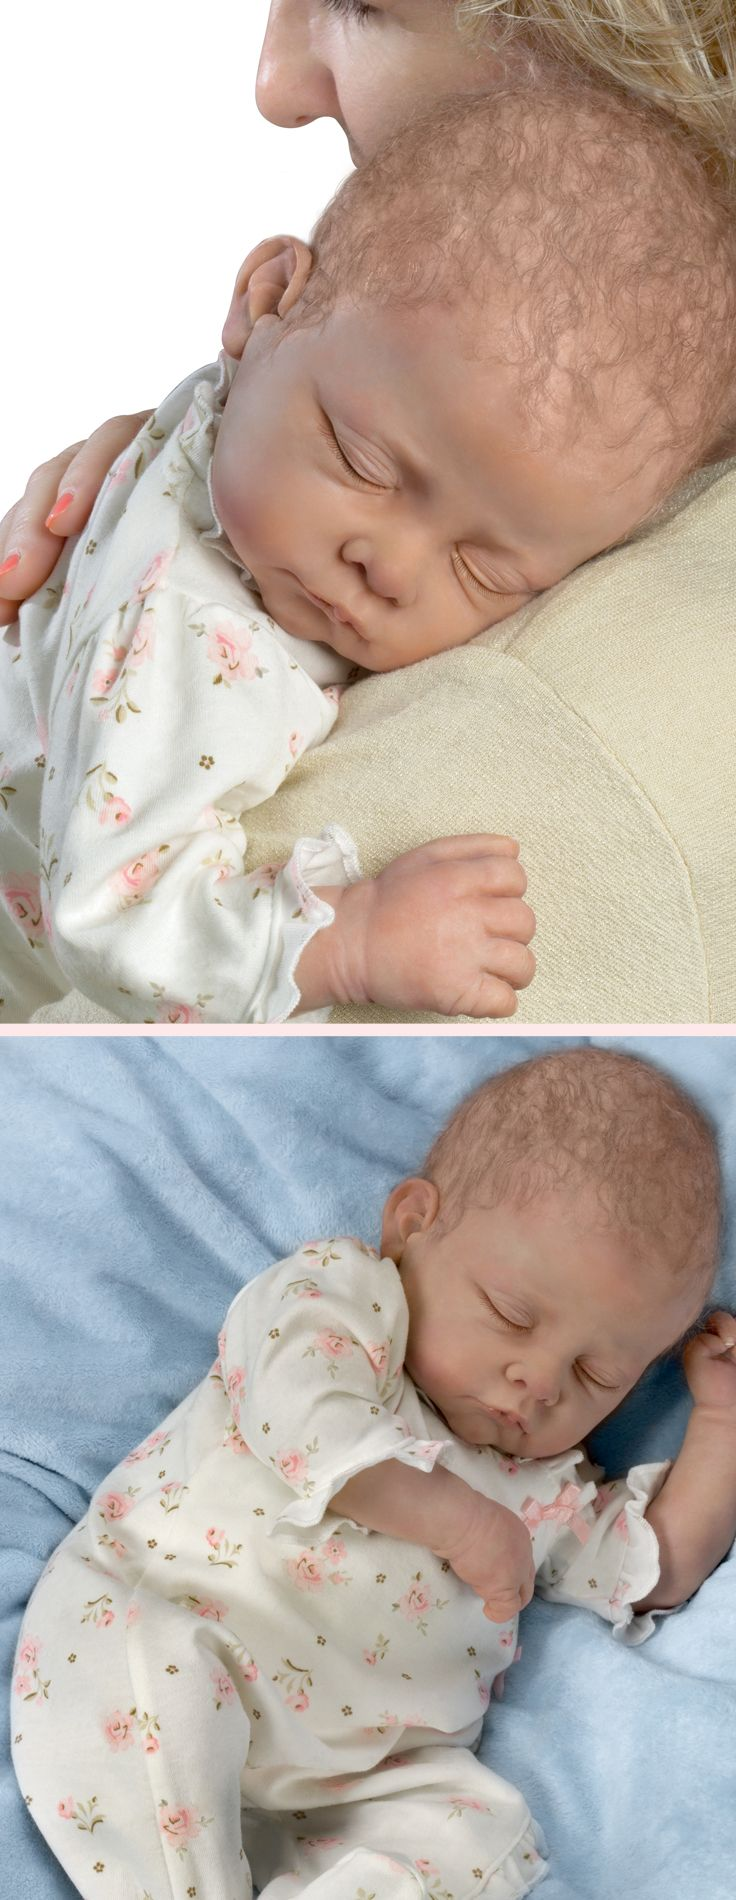 Cherish the joys of a newborn with the first-ever lifelike Linda Murray baby doll that breathes, coos and has a heartbeat!